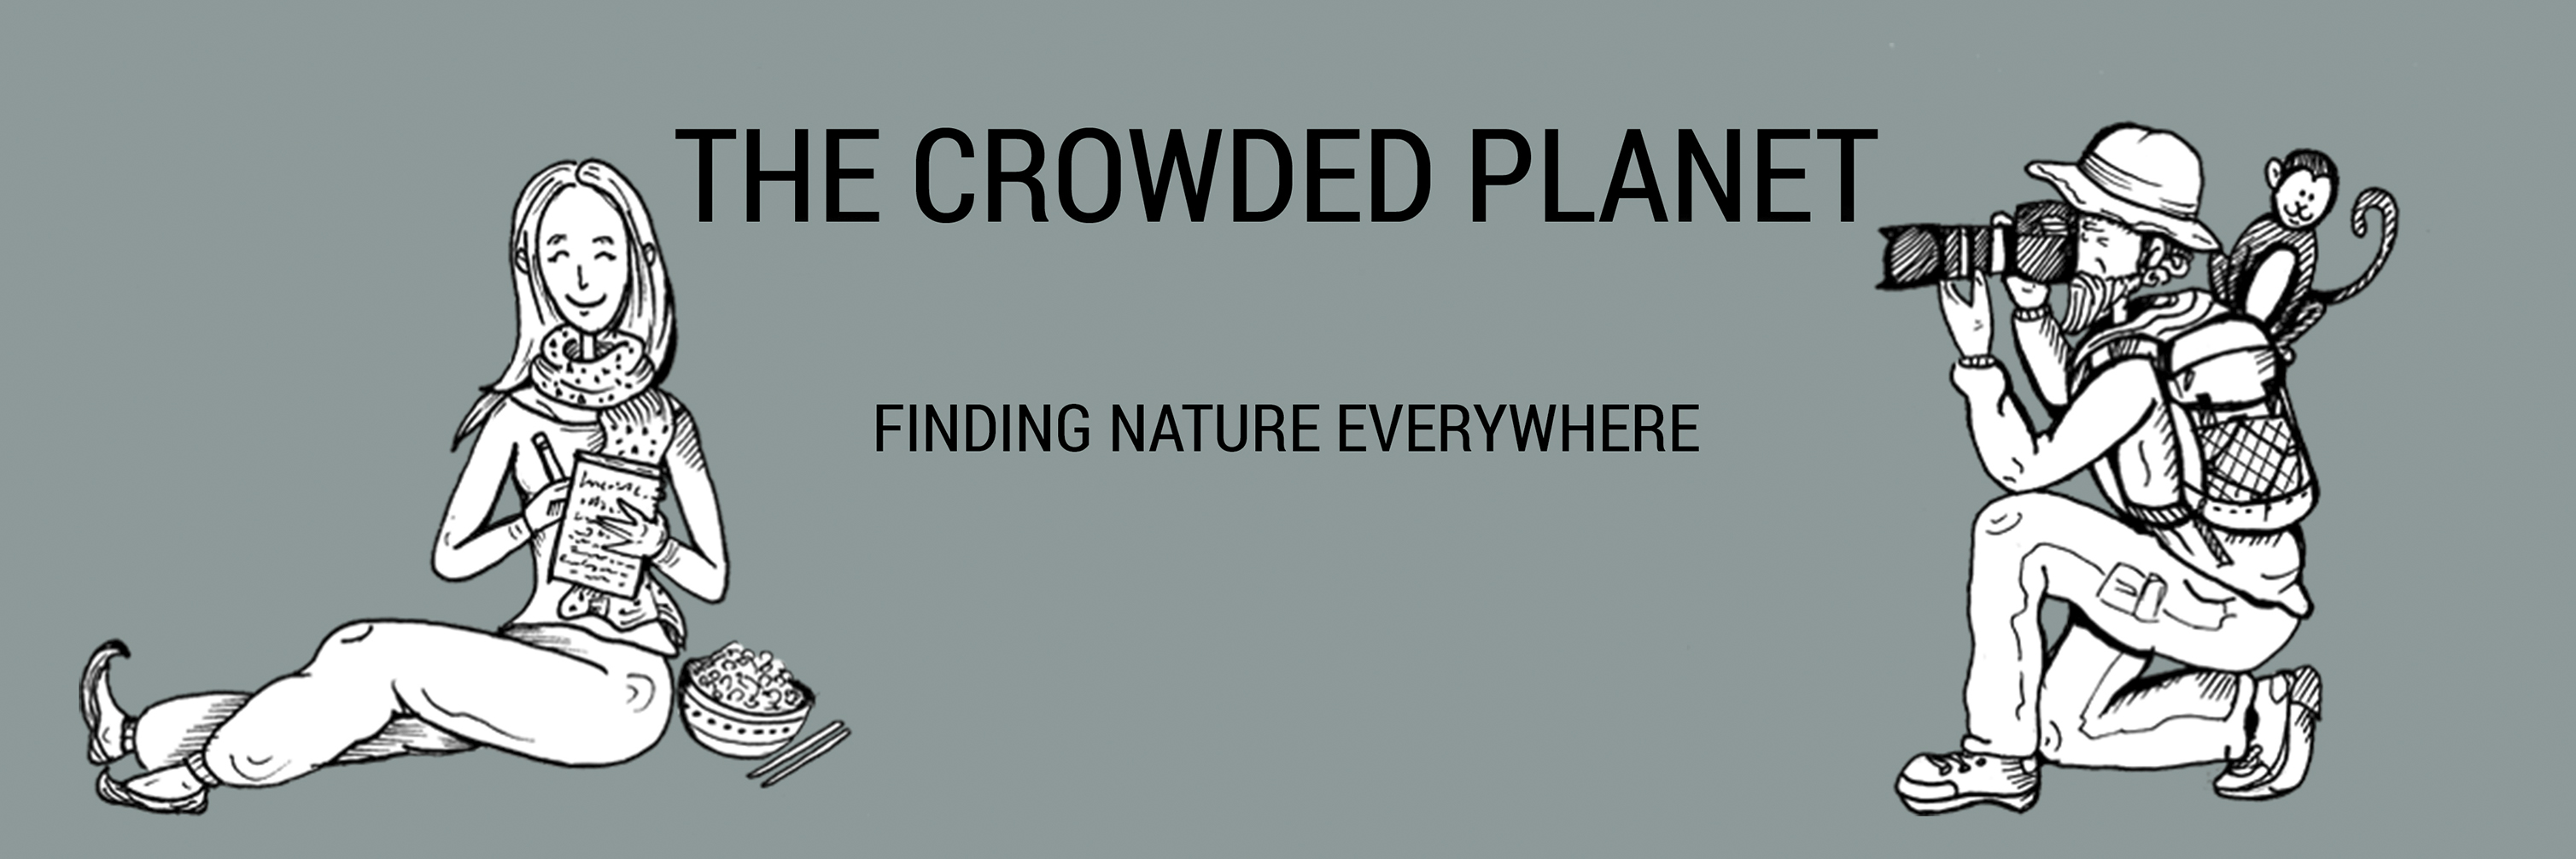 The Crowded Planet logo